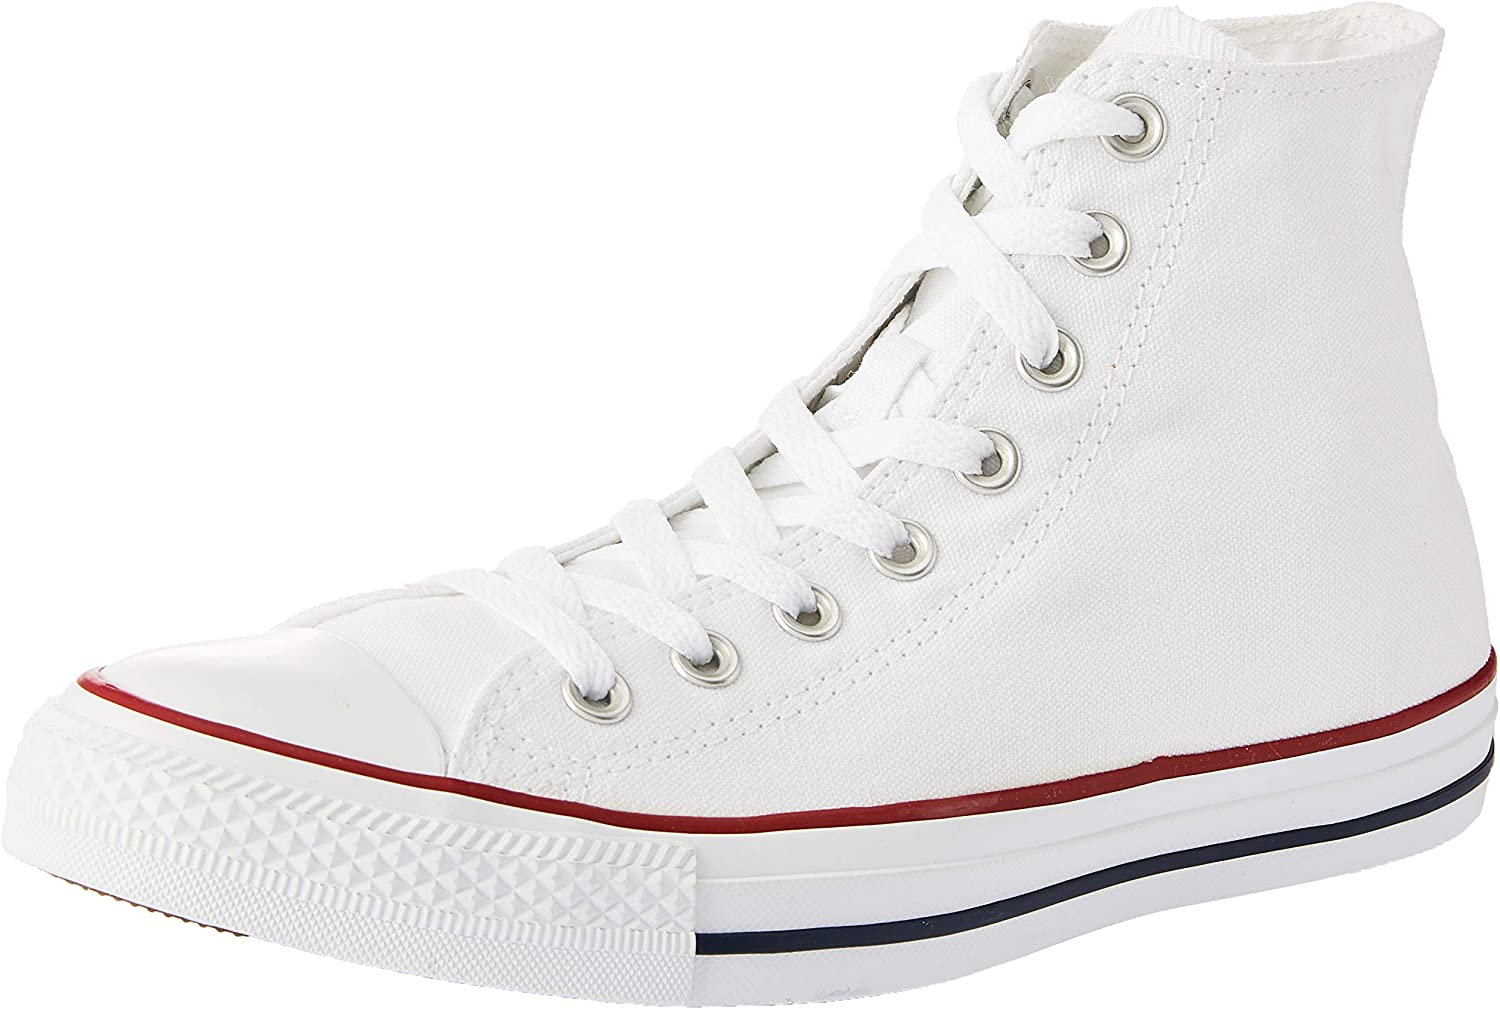 Converse Adult Vintage Leather Chuck Taylor All Star shoes